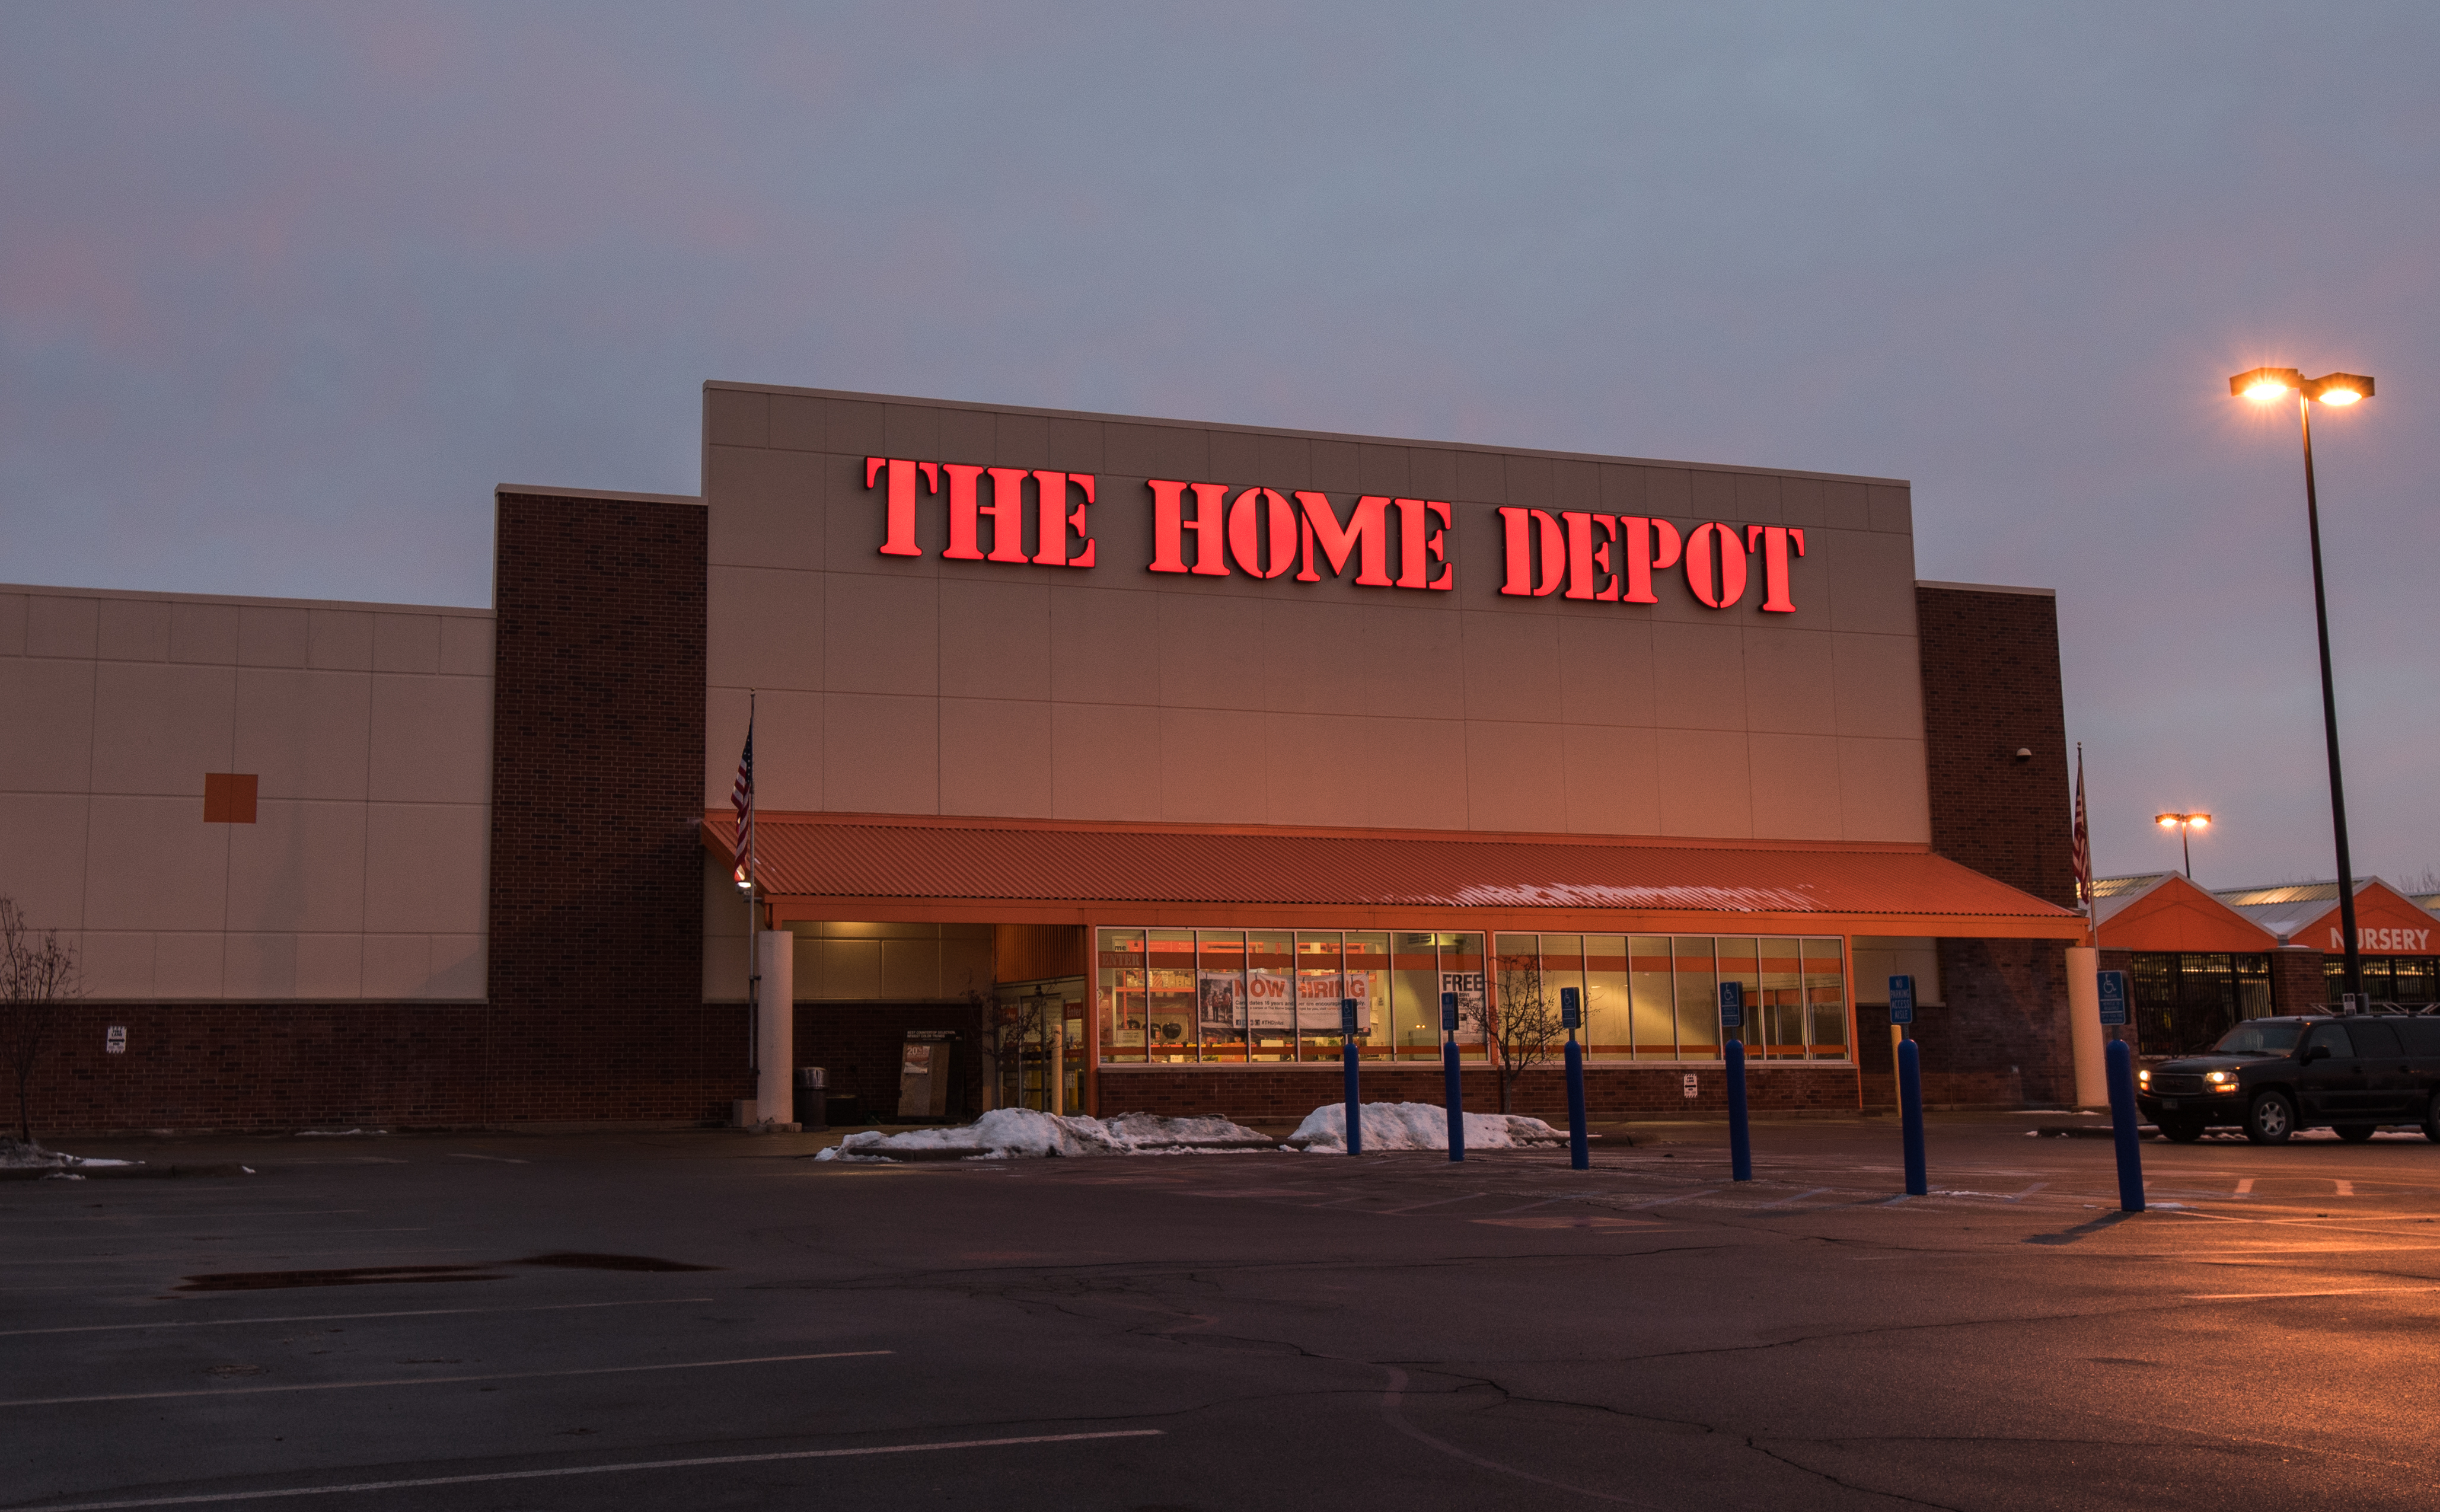 File:The Home Depot - Store (28026779519).jpg - Wikimedia Commons